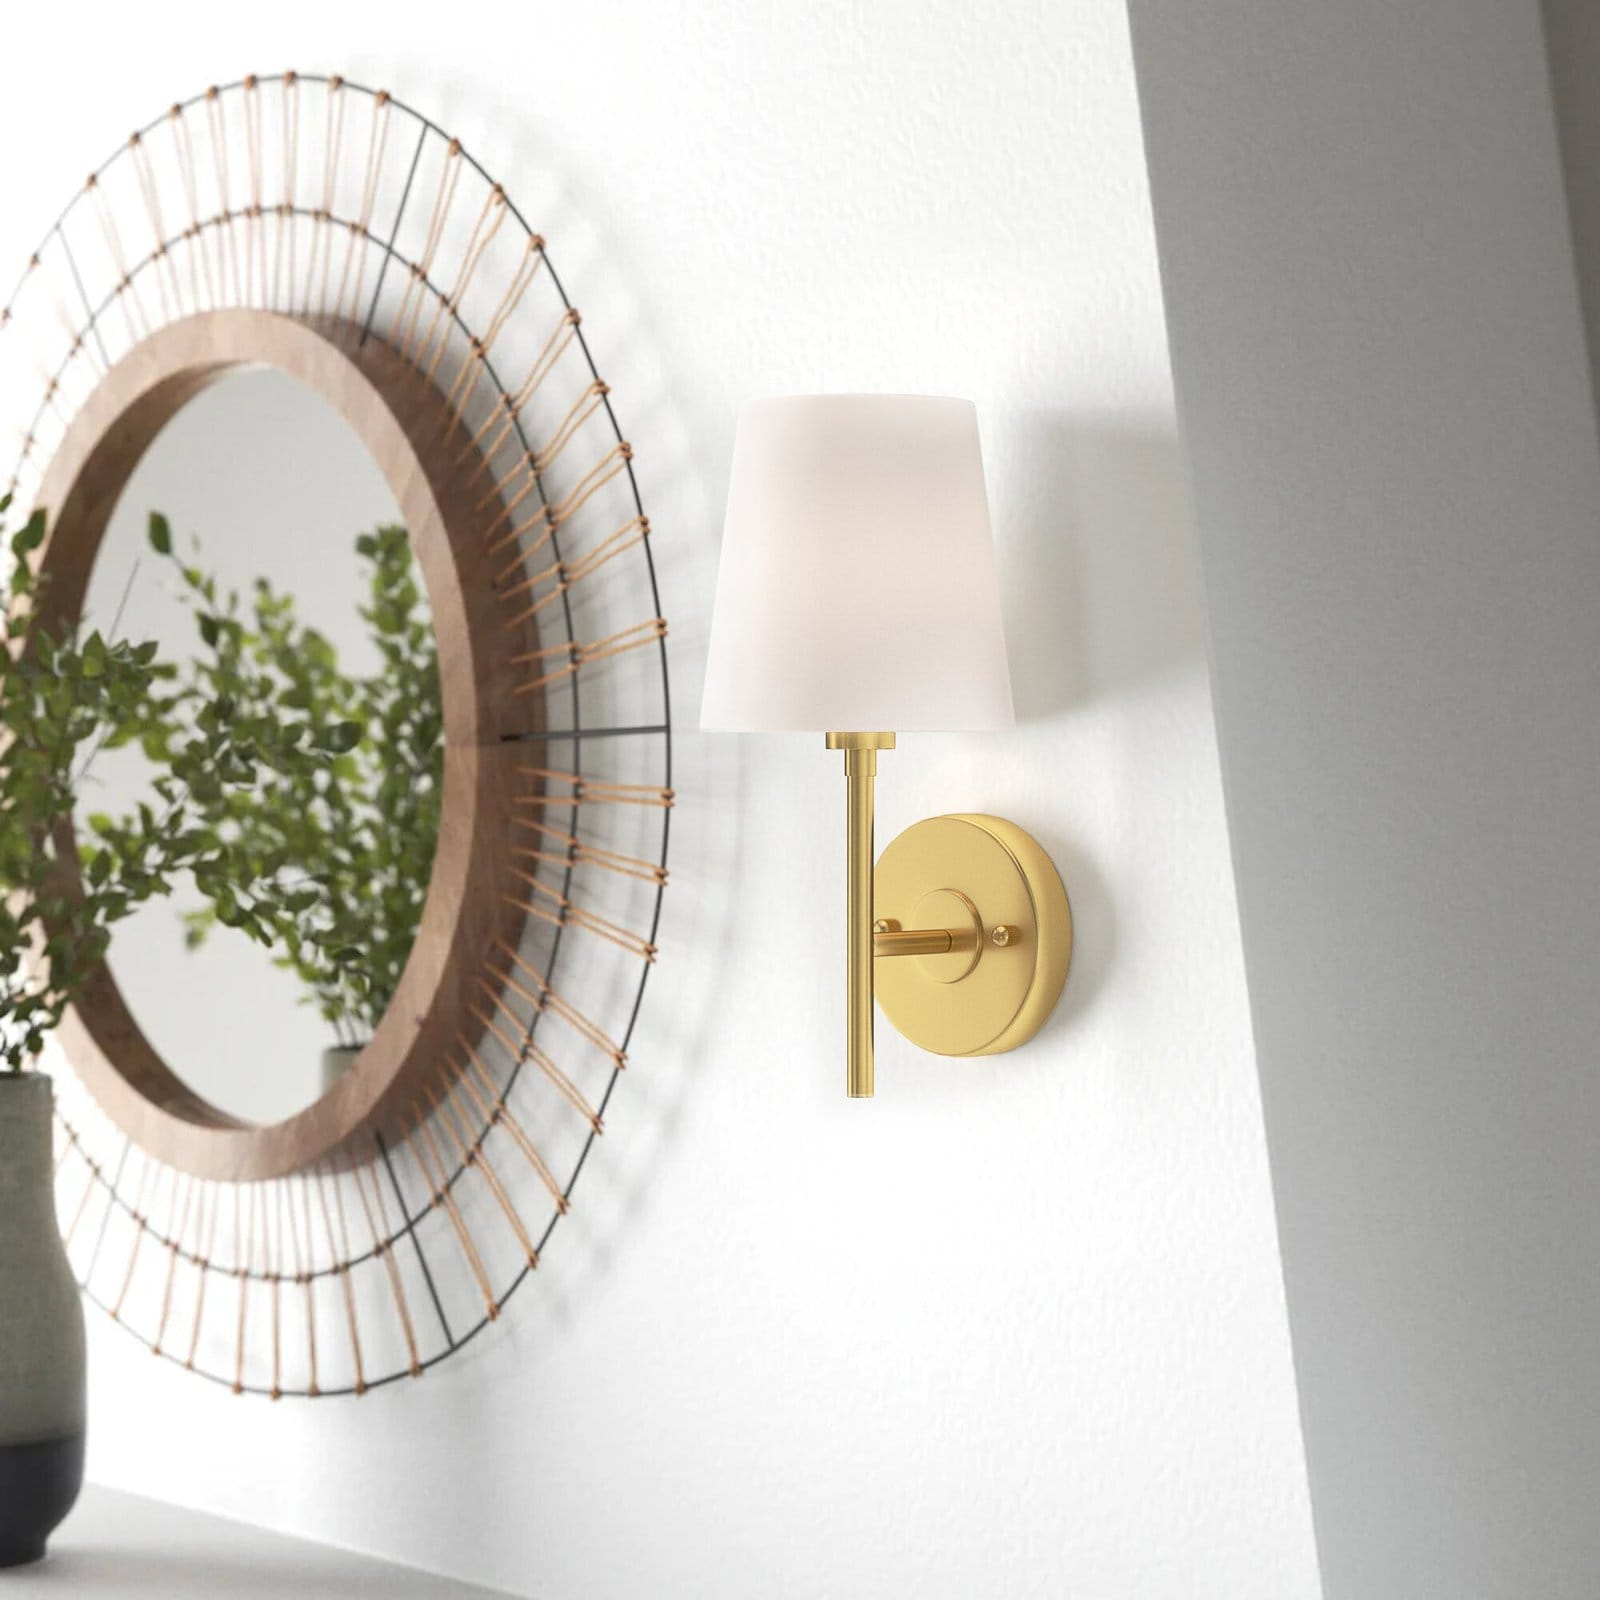 Use Dimmable Wall Sconces as an Additional Light Source